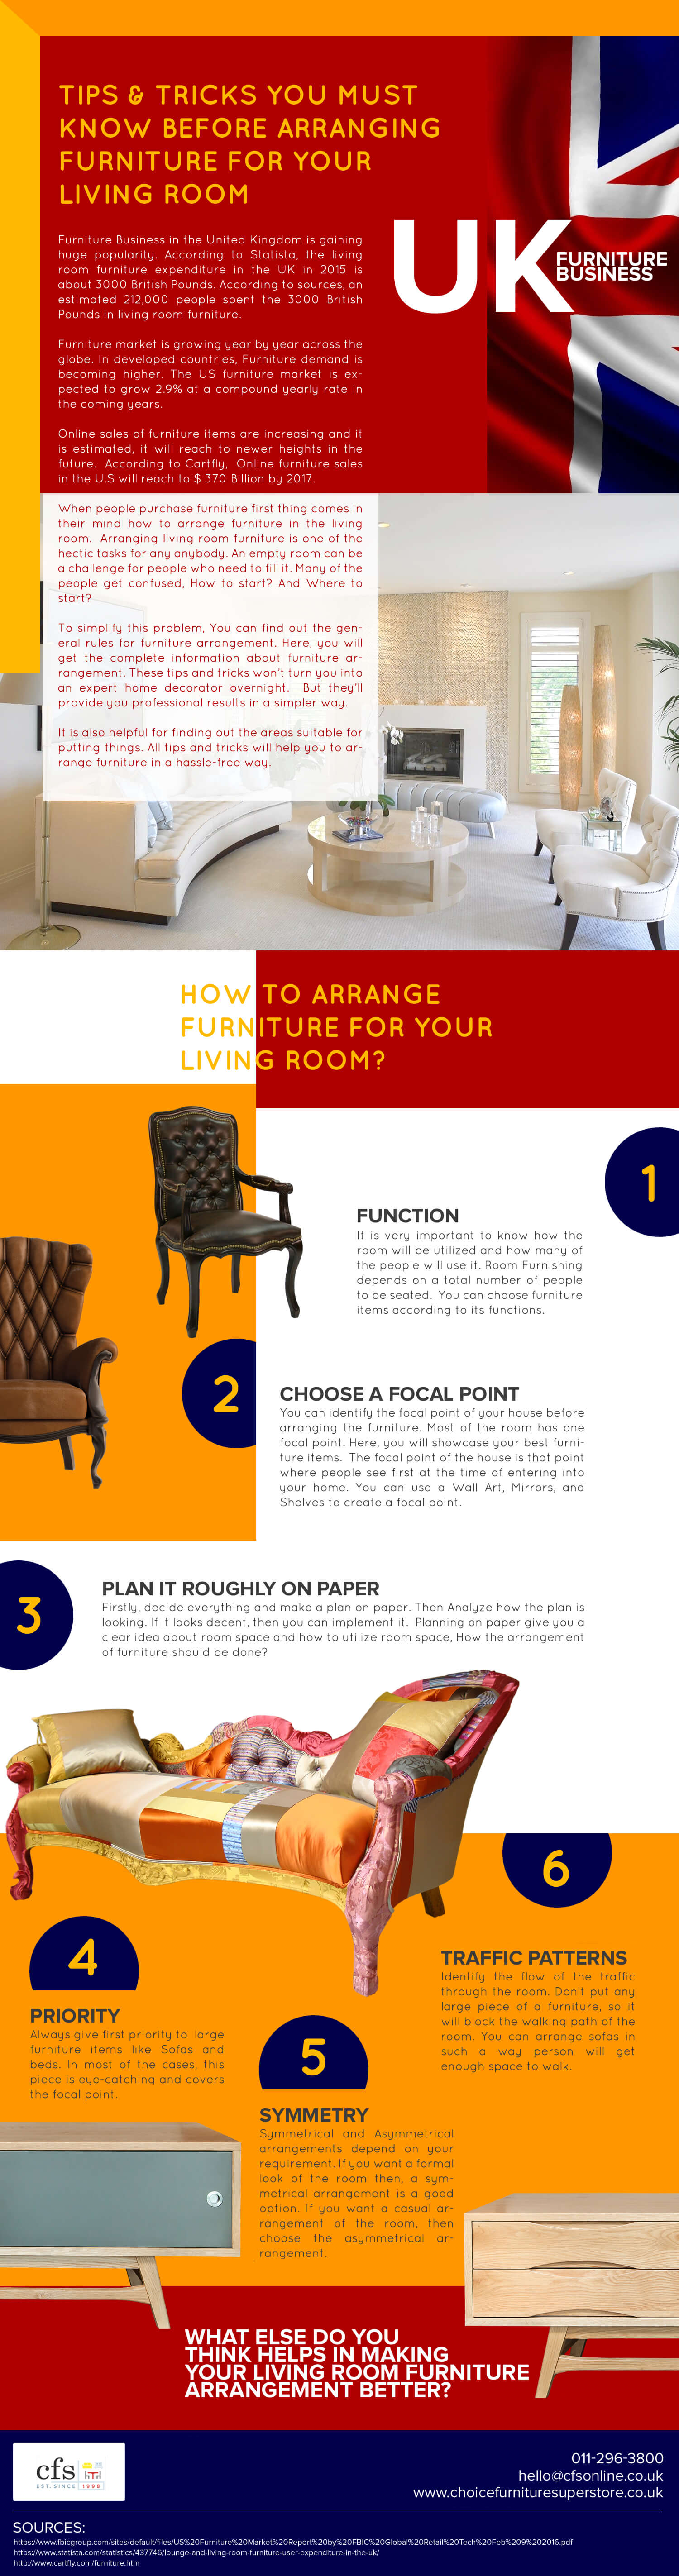 tips-and-tricks-you-must-know-before-arranging-furniture-for-your-living-room-infographic-plaza